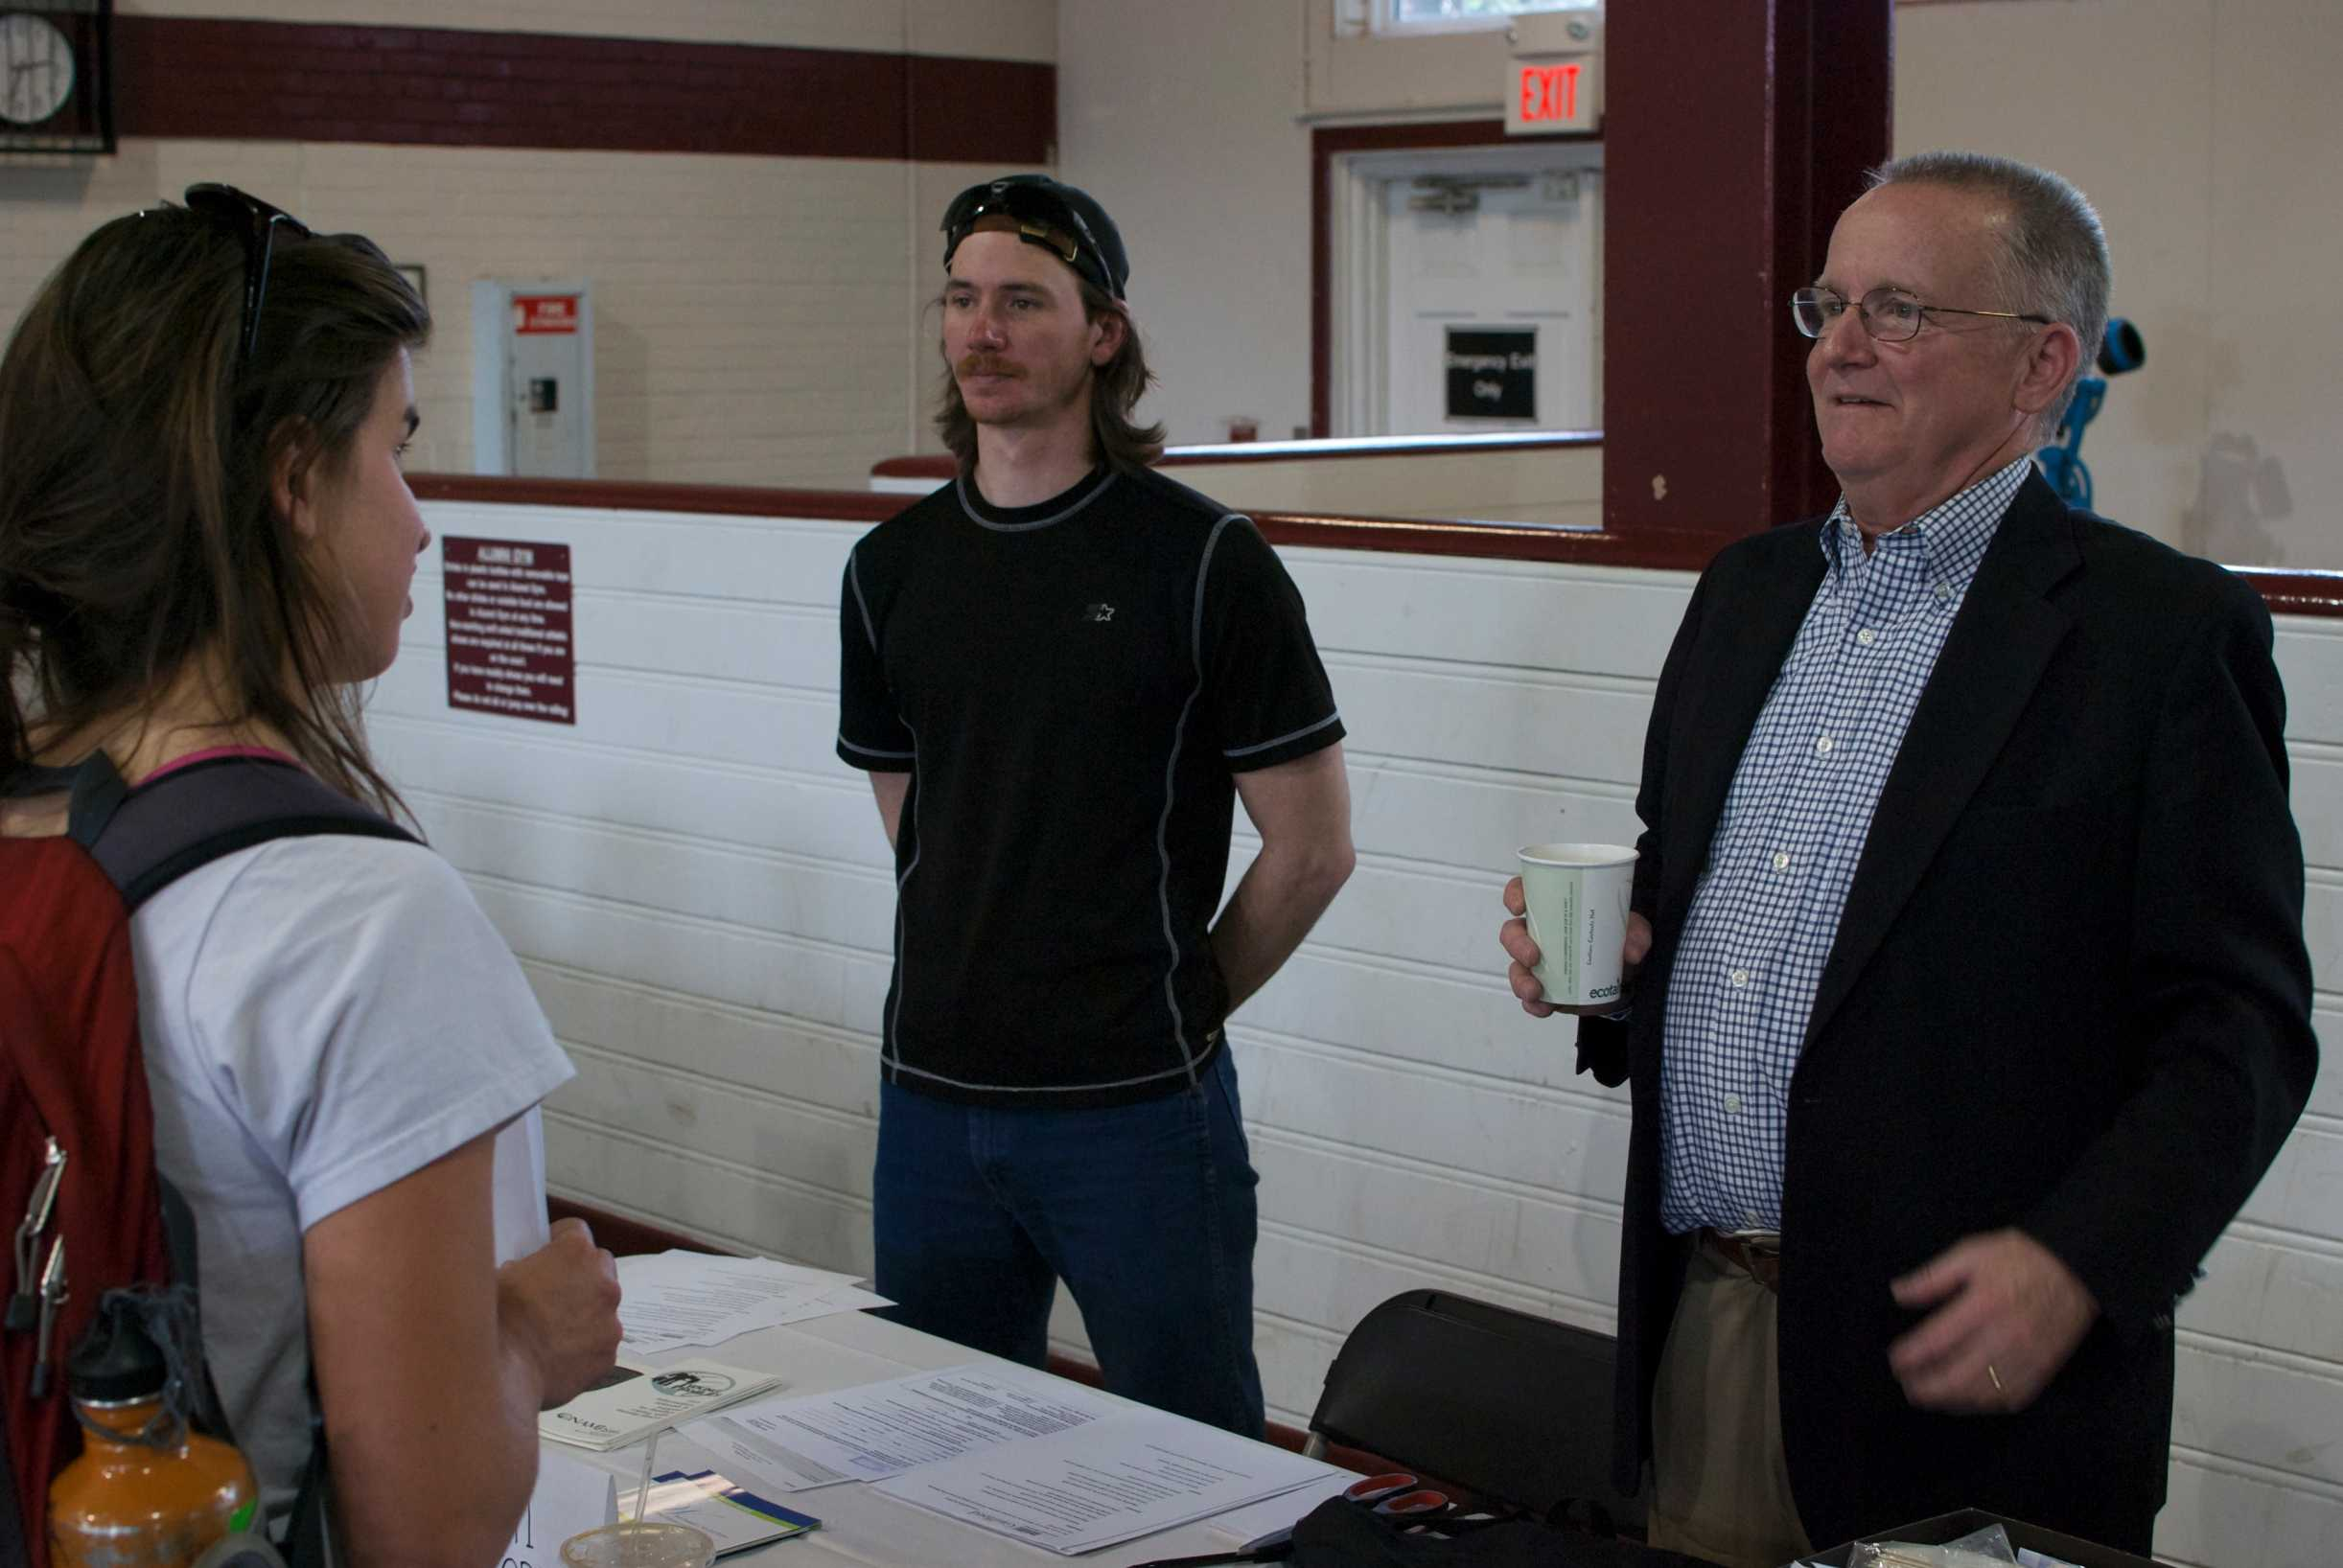 Senior Molly Gibbs learns about the National Alliance of Mental Illness (NAMI) from representative Jack Glenn, president of NAMI Guilford, at the Non-Profit Engagement Fair held in the Alumni Gym on March 16. (Talyor Shields)